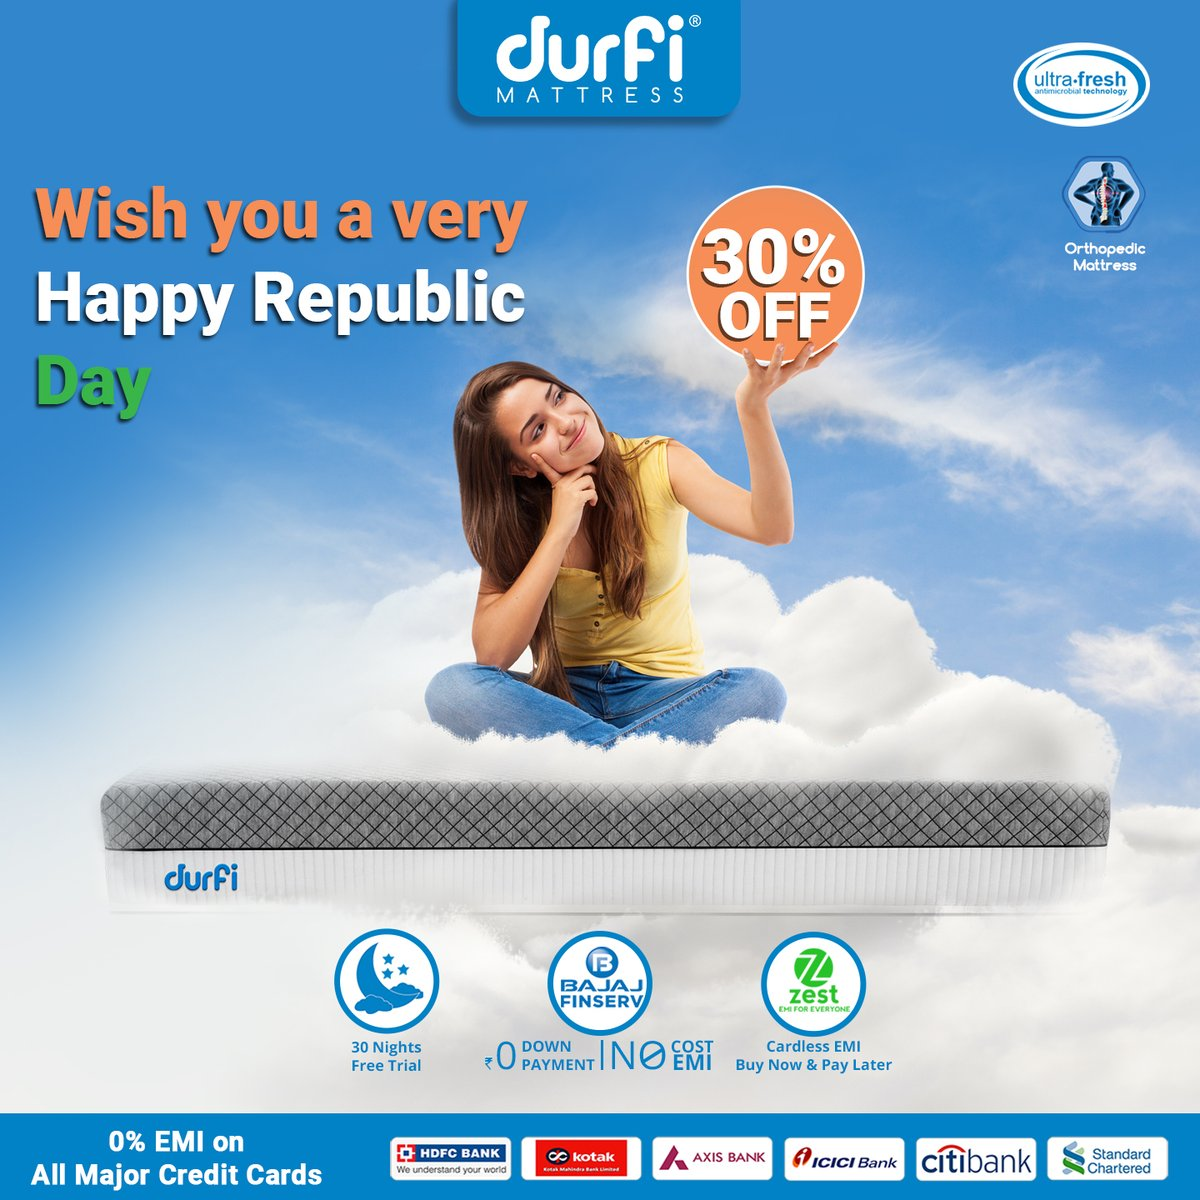 #RepublicDay🇮🇳 #Sale🛍️ is live right now. Celebrate this Republic Day by saying No to back pain and sleepless nights and YES to #healthy👩‍⚕️ #sleep😴 with Durfi mattress at flat 30% Off with 0% EMI, BajajFin. Buy from: Durfi: